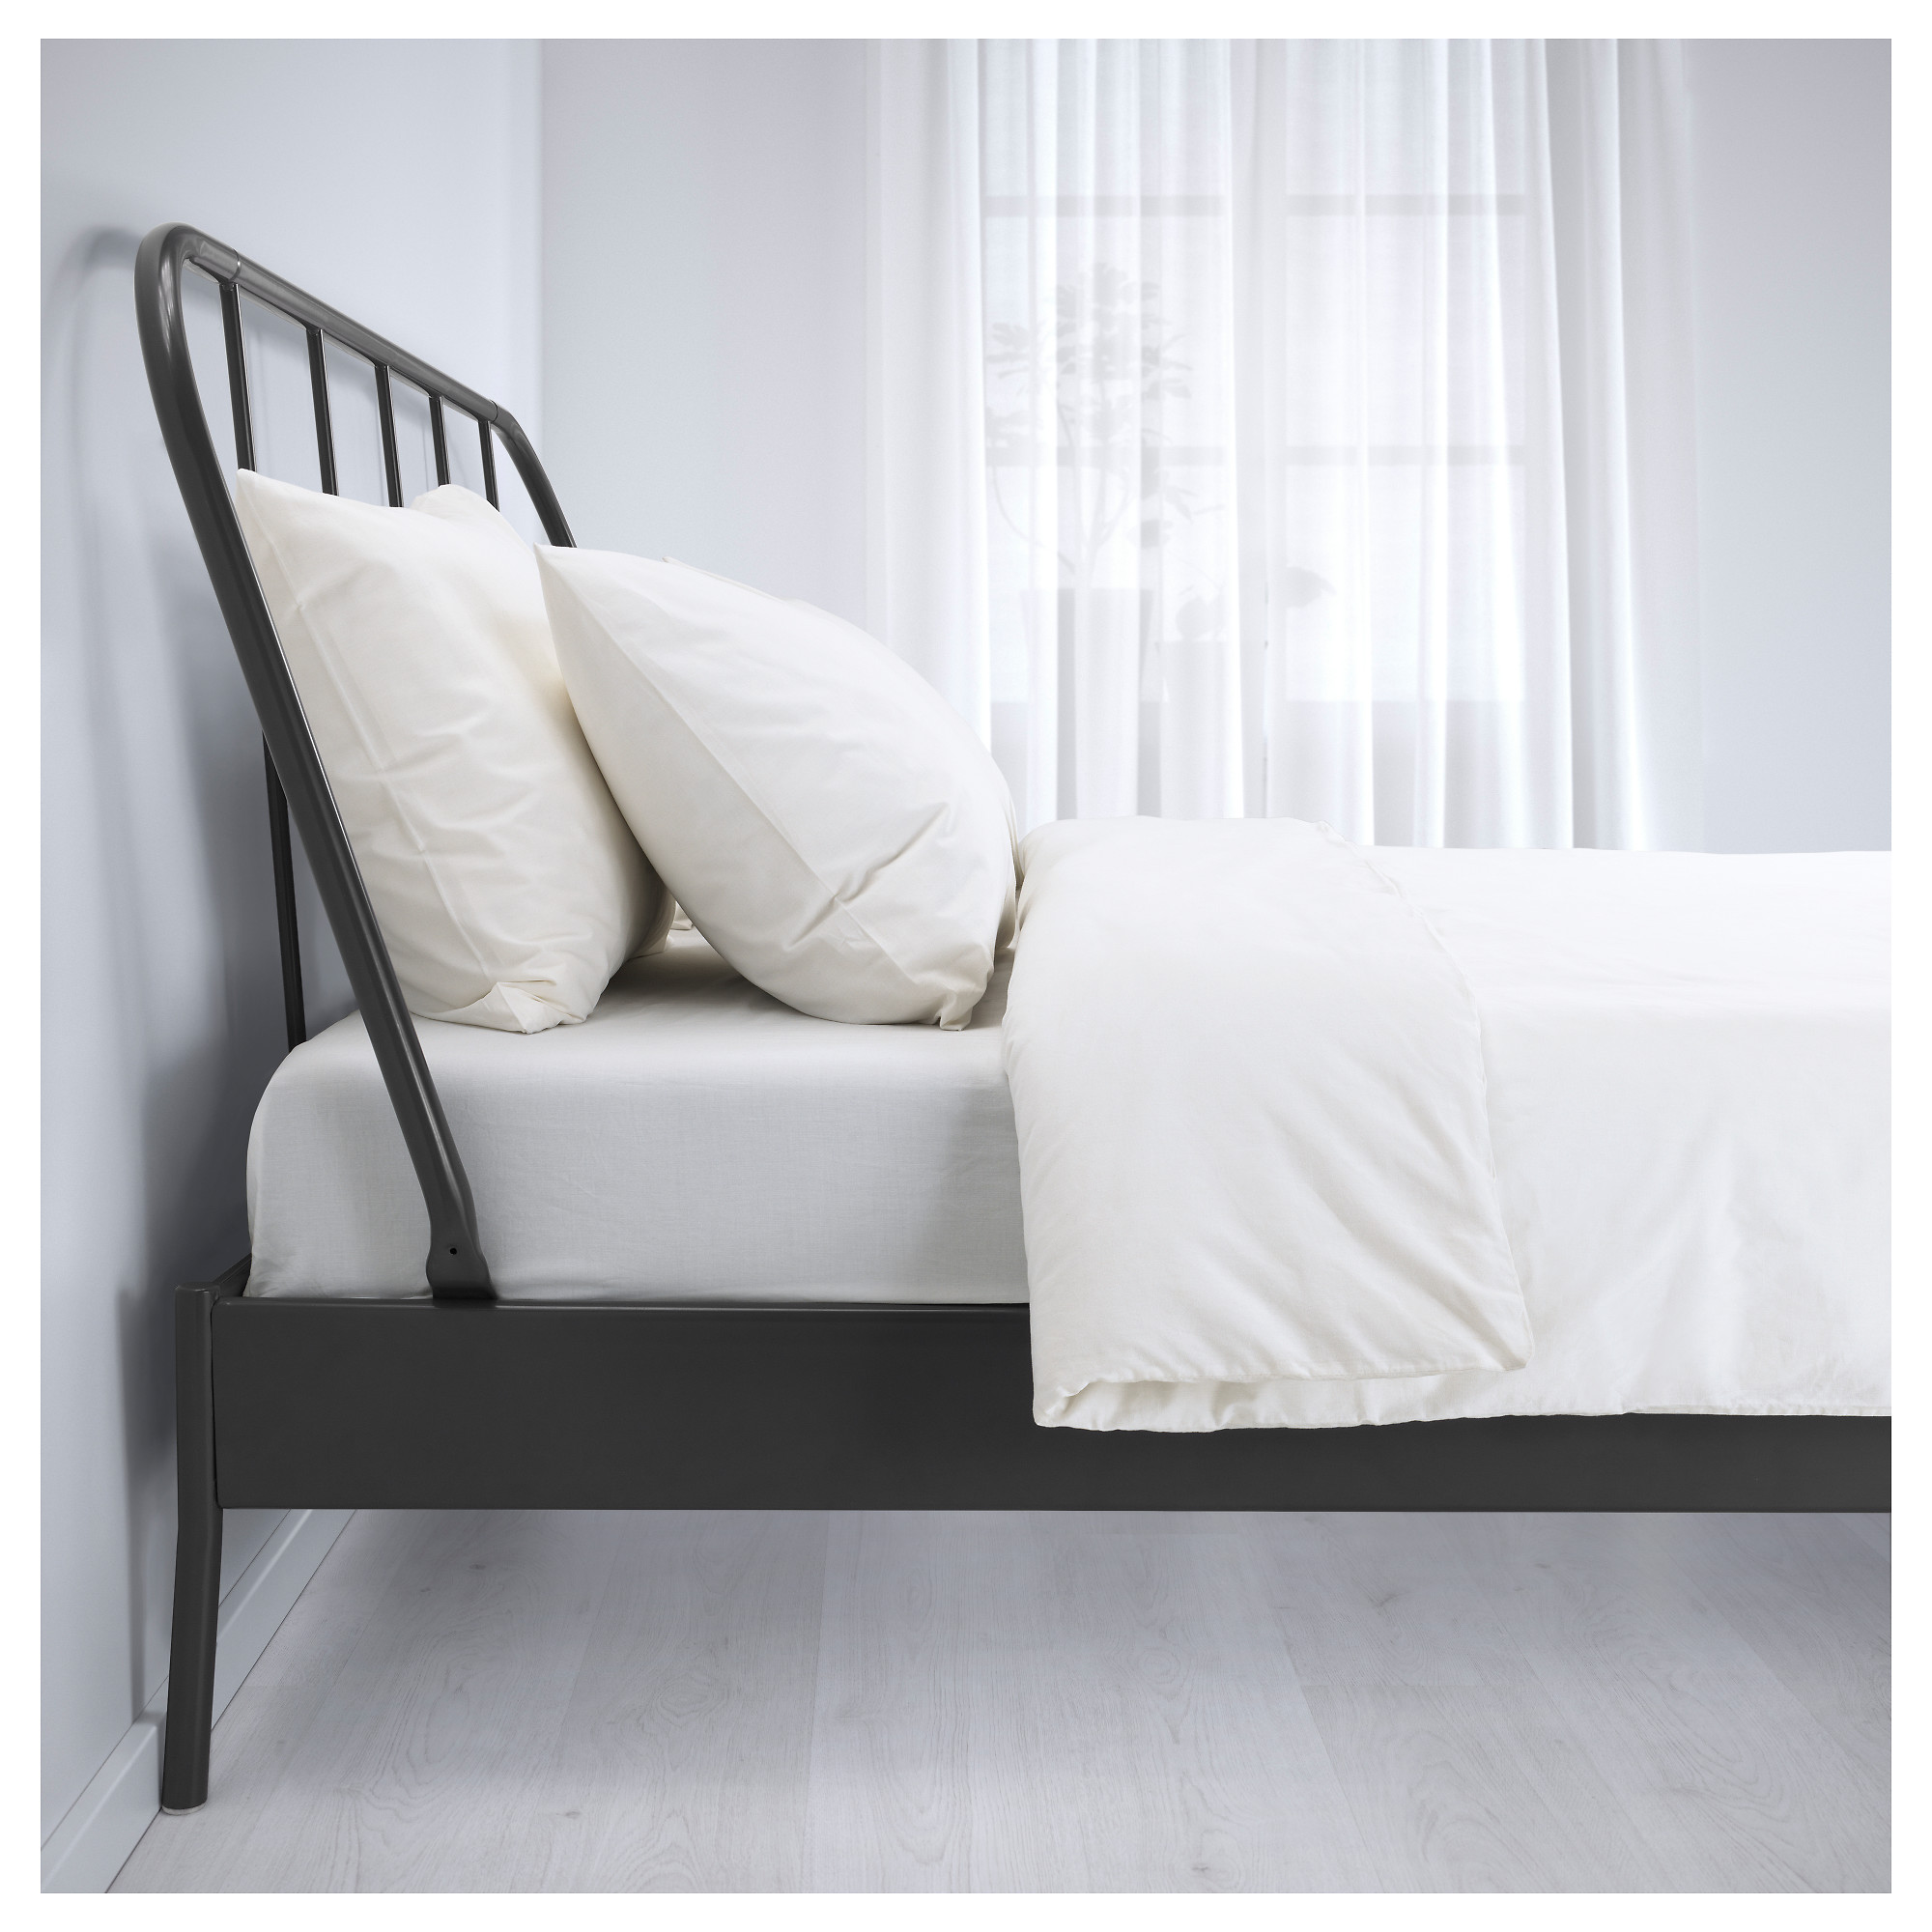 KOPARDAL Bed frame Queen Luröy slatted bed base IKEA